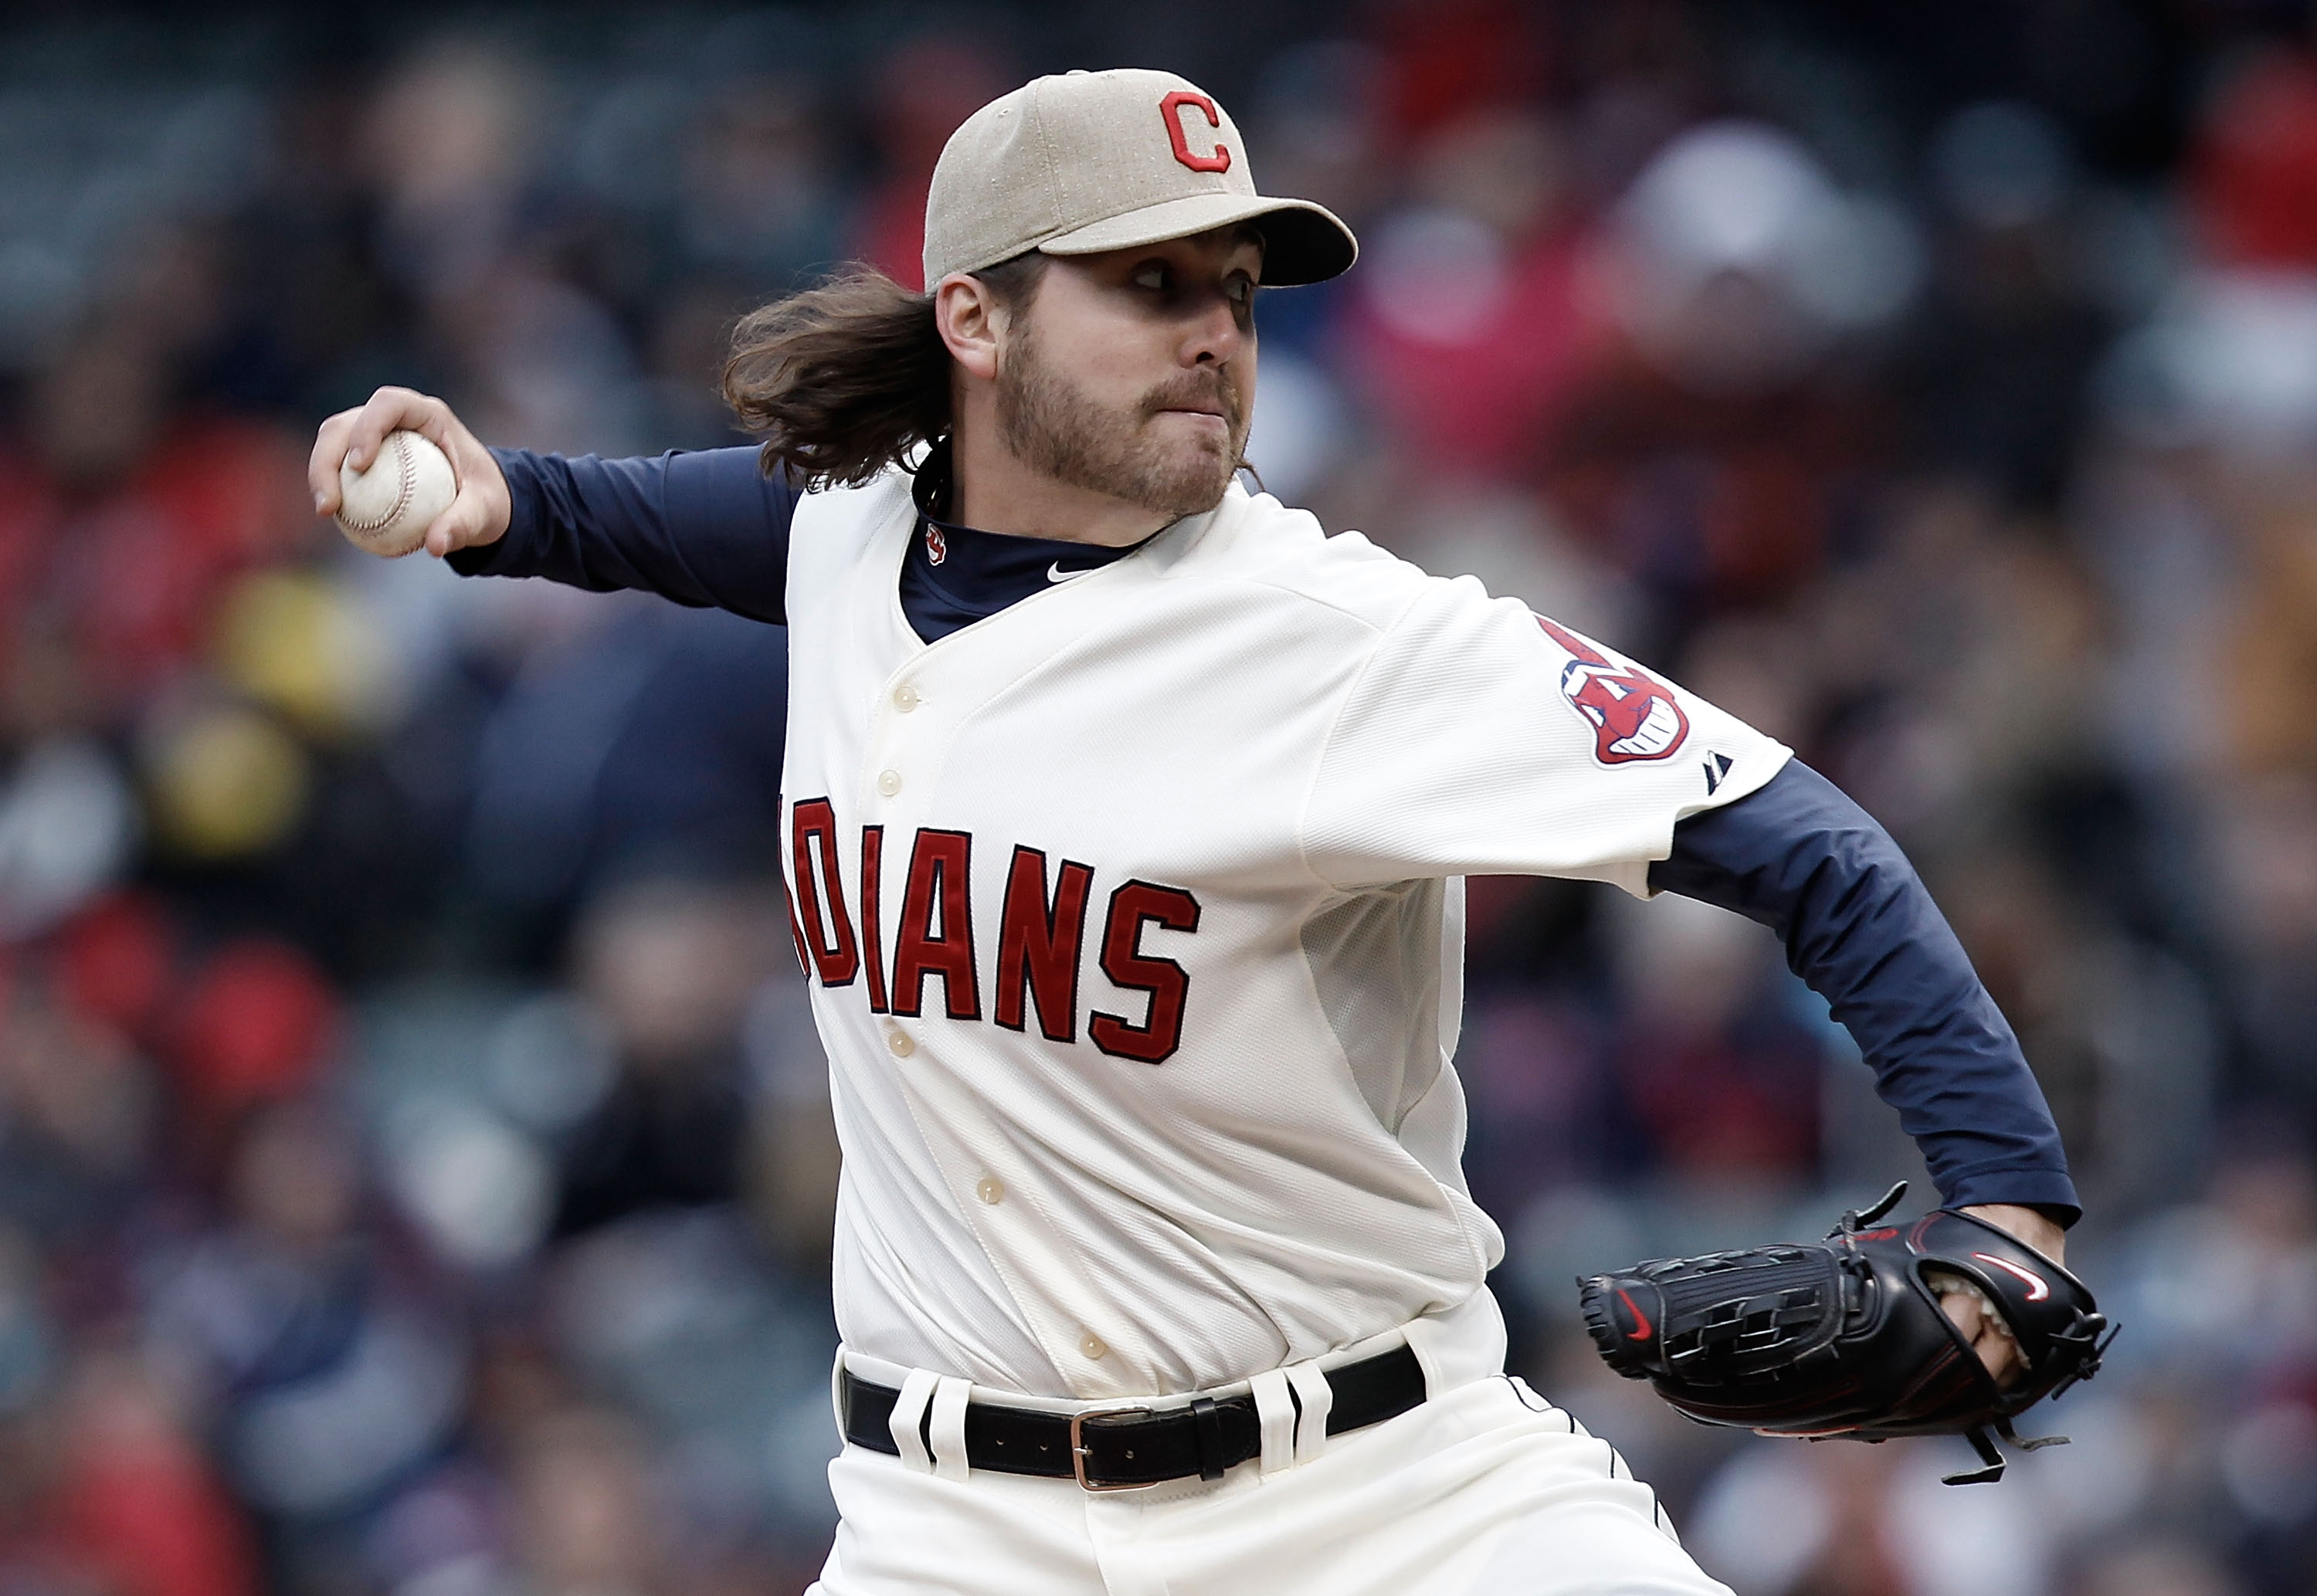 CLEVELAND, OH- APRIL 17: Chris Perez #54 of the Cleveland Indians pitches against the Chicago White Sox in the ninth inning during the game on April 17, 2010 at Progressive Field in Cleveland, Ohio.  (Photo by Jared Wickerham/Getty Images)